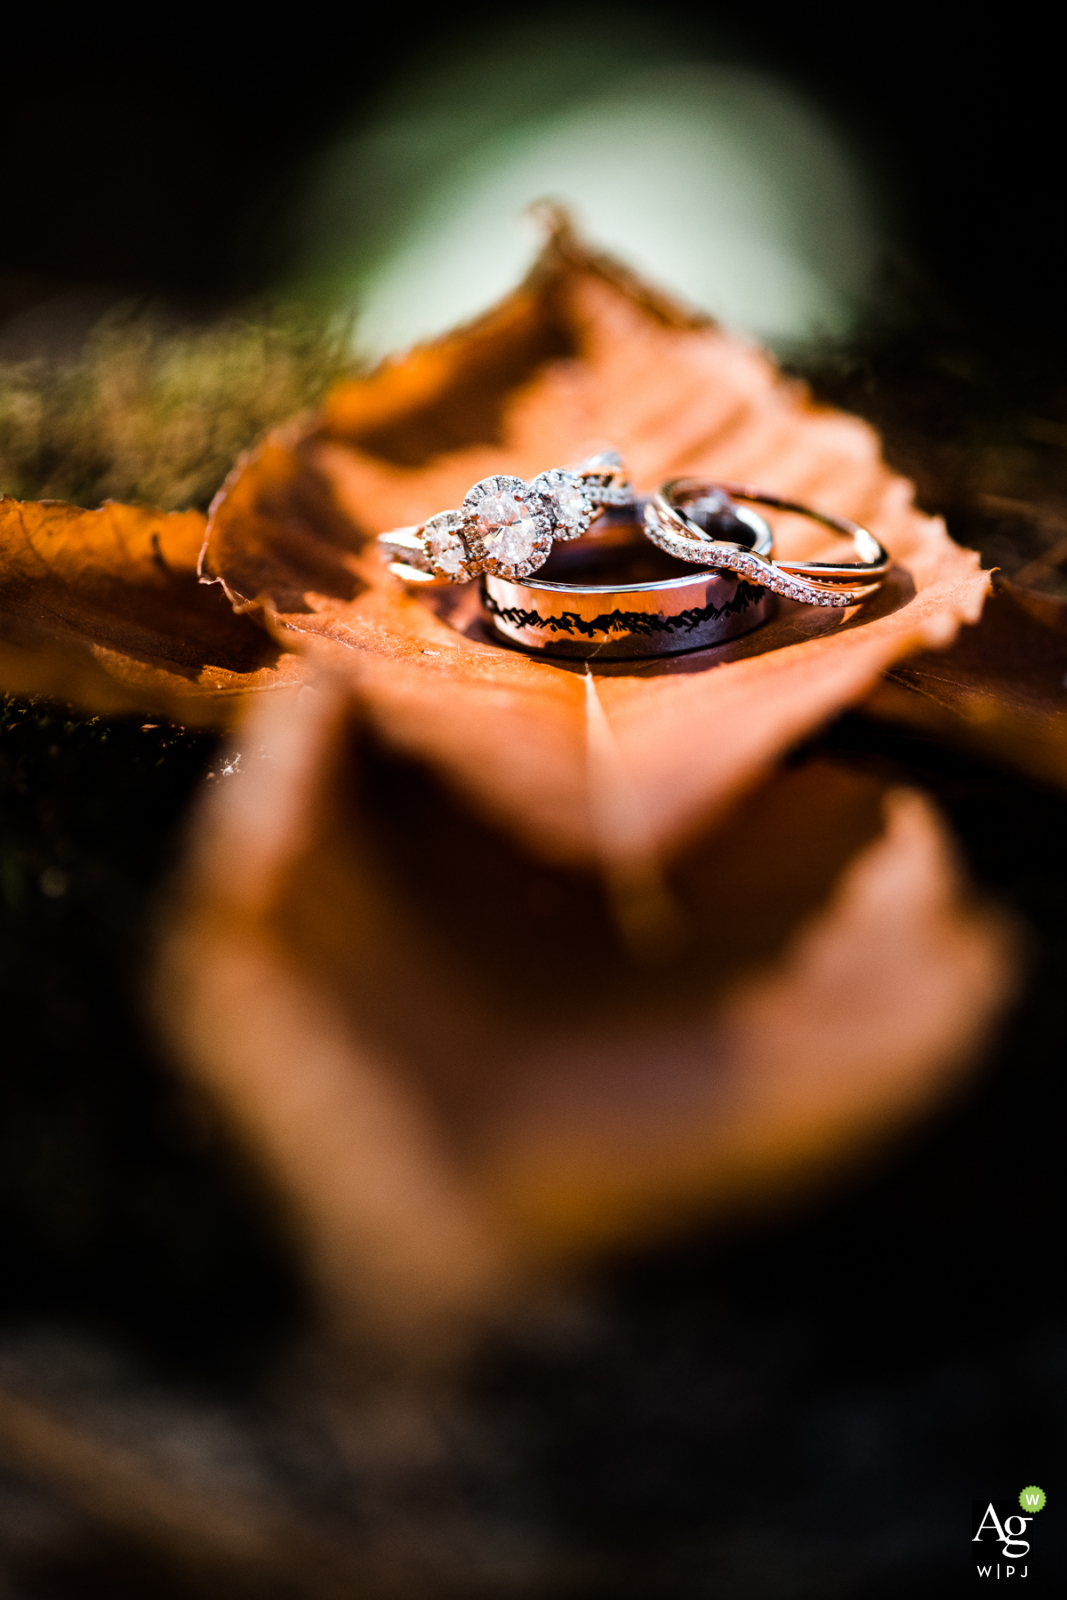 Wedding photo in Massachusetts at grooms family | backyard autumnal rings detail photograph on a leaf